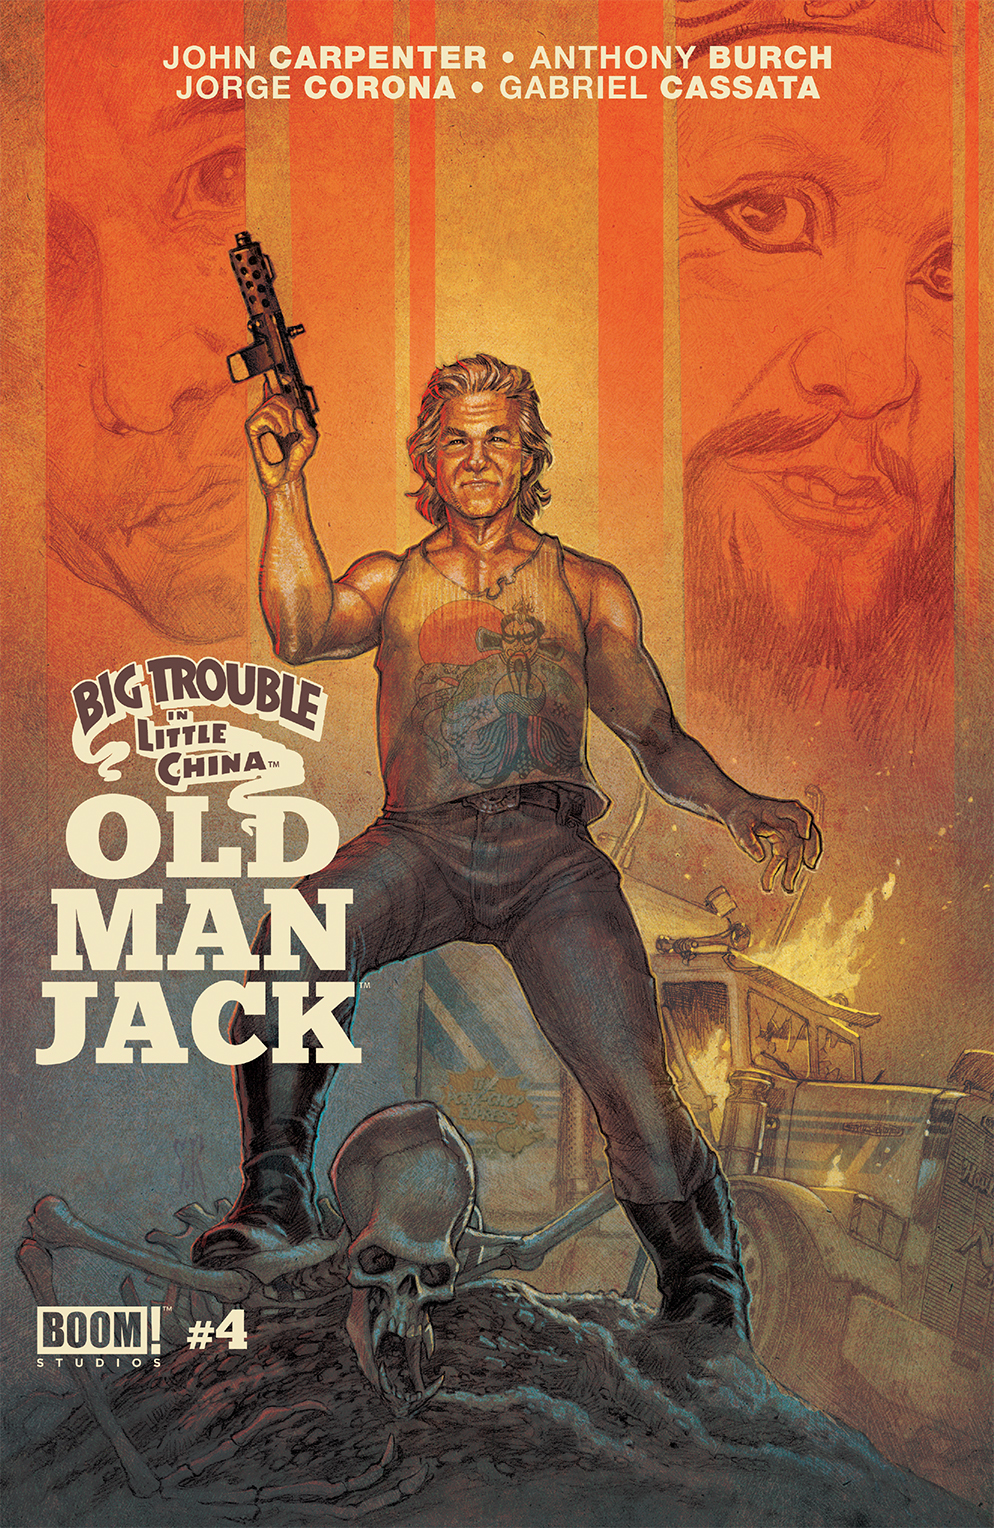 BIG TROUBLE IN LITTLE CHINA OLD MAN JACK #4 MAIN & MIX